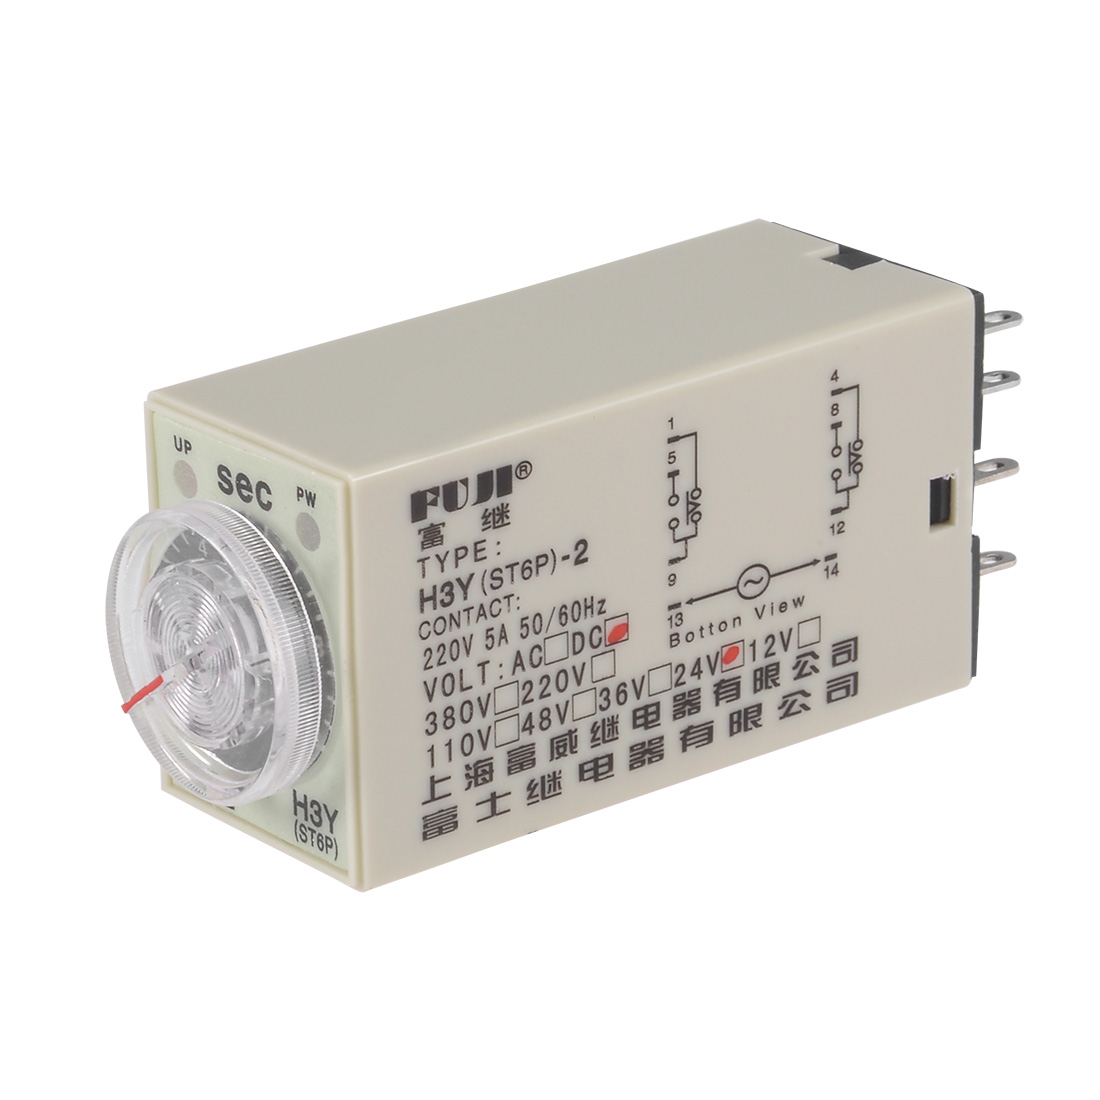 24VDC 10S 8 Terminals Range Adjustable Delay Timer Time Relay H3Y(ST6P)-2